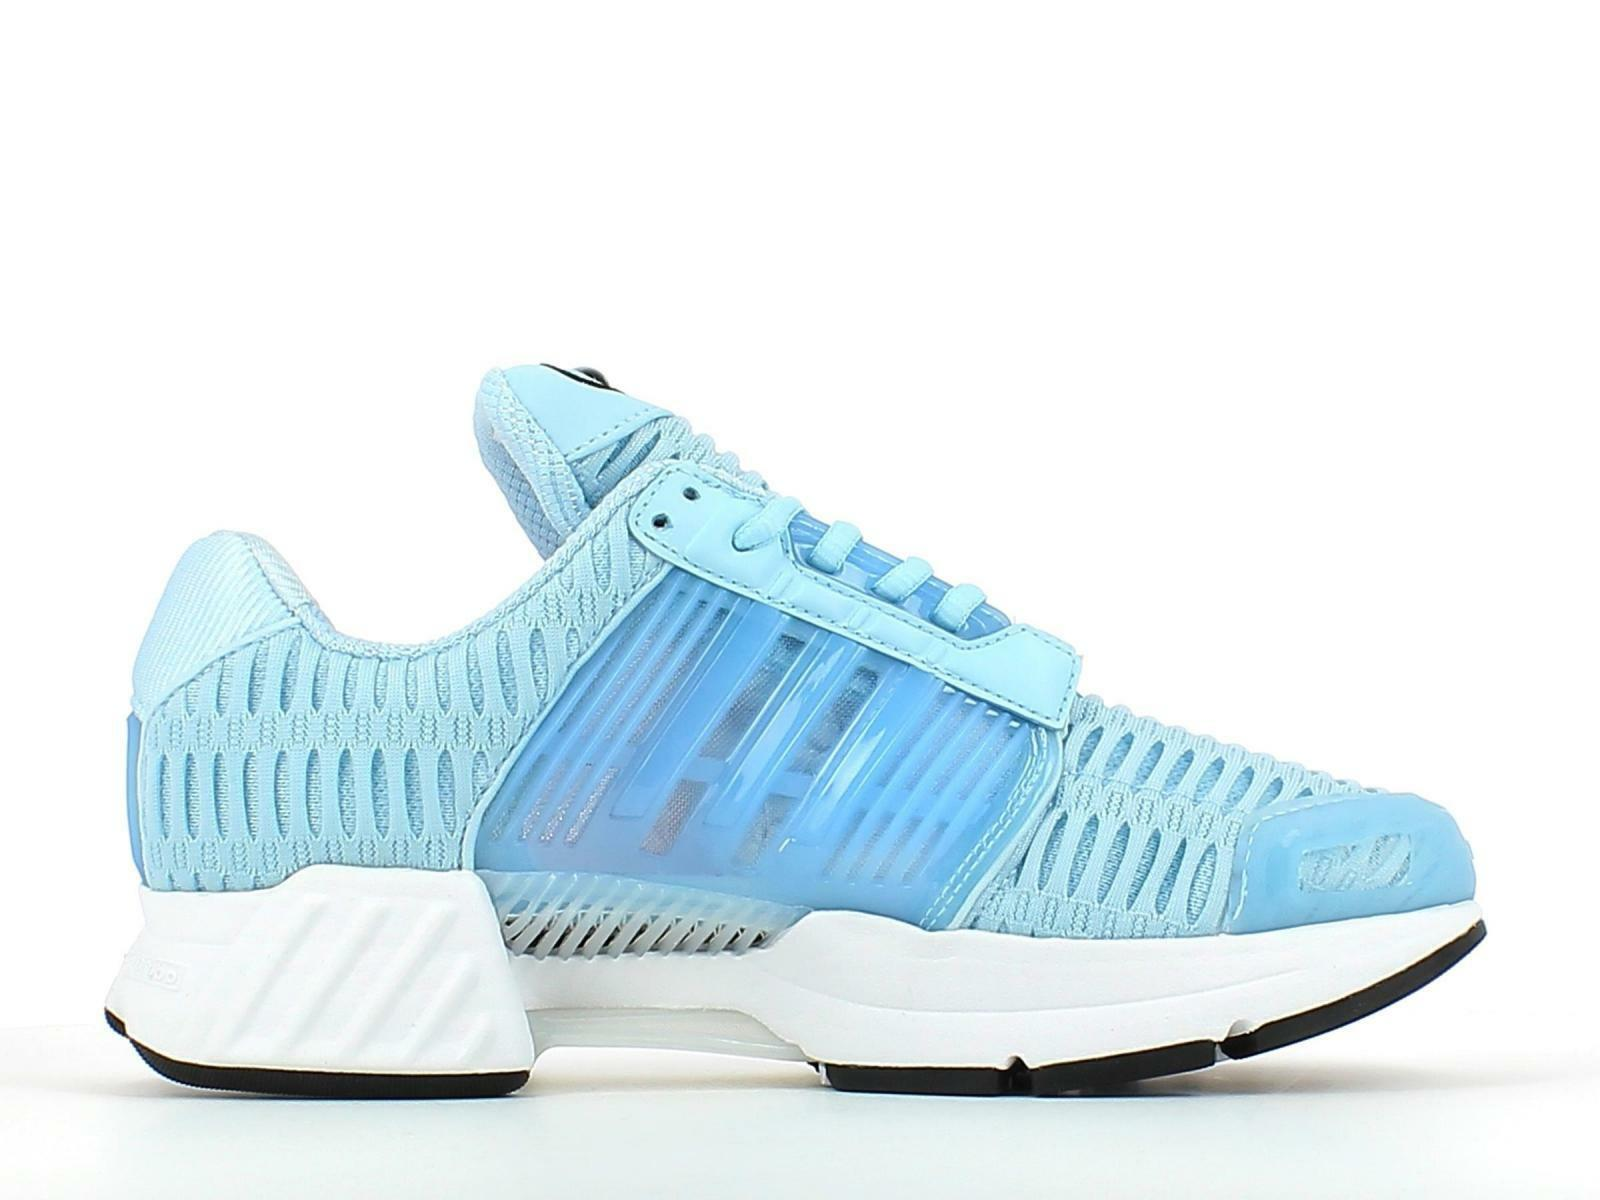 Decaer Posdata Hombre  Mens ADIDAS CLIMA COOL 1 Ice Blue Running Trainers BA8580 for sale online